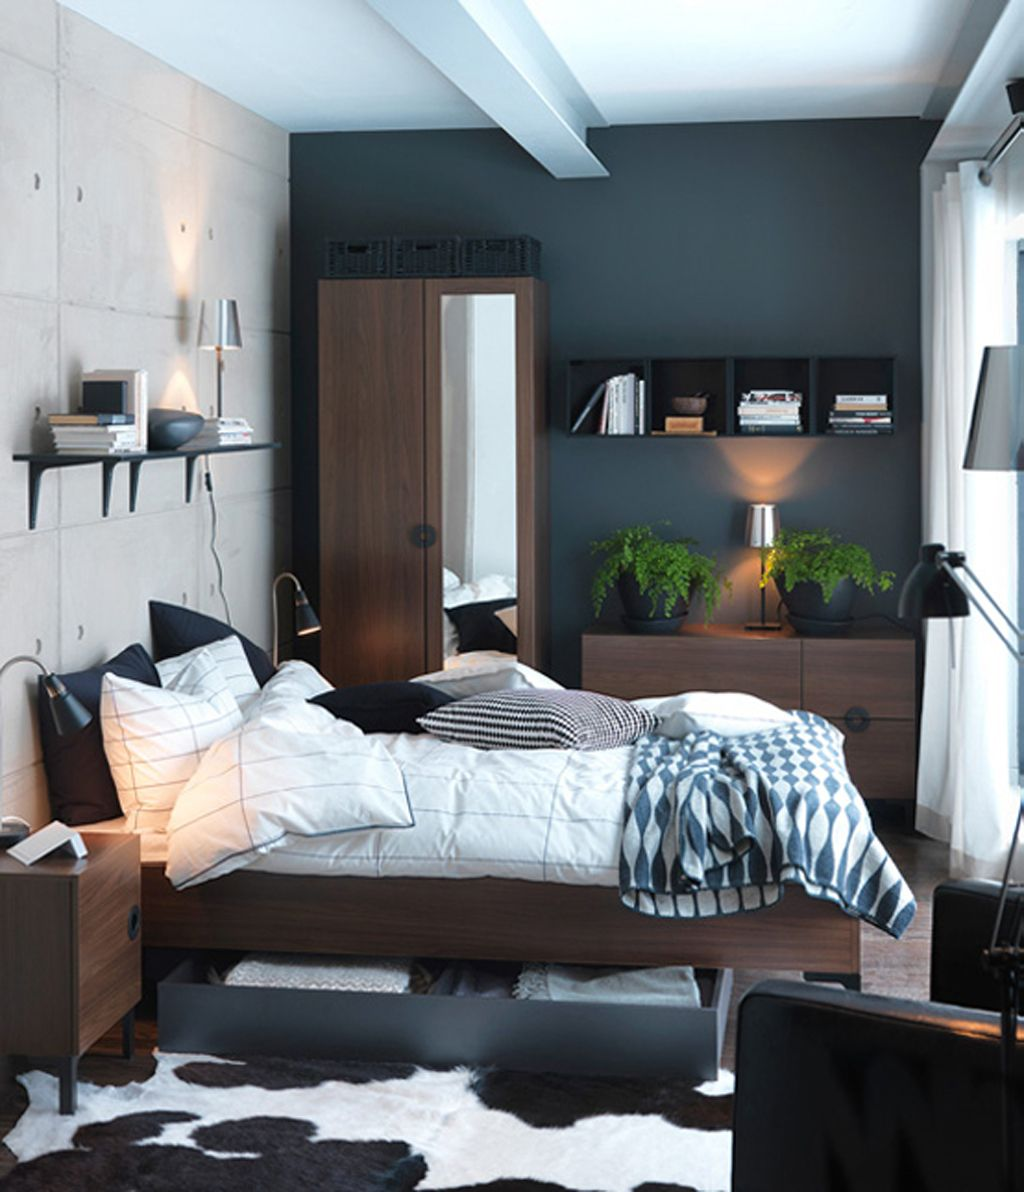 Bedroom Theme Brown Blue White Grey Hints Of Green And Gold